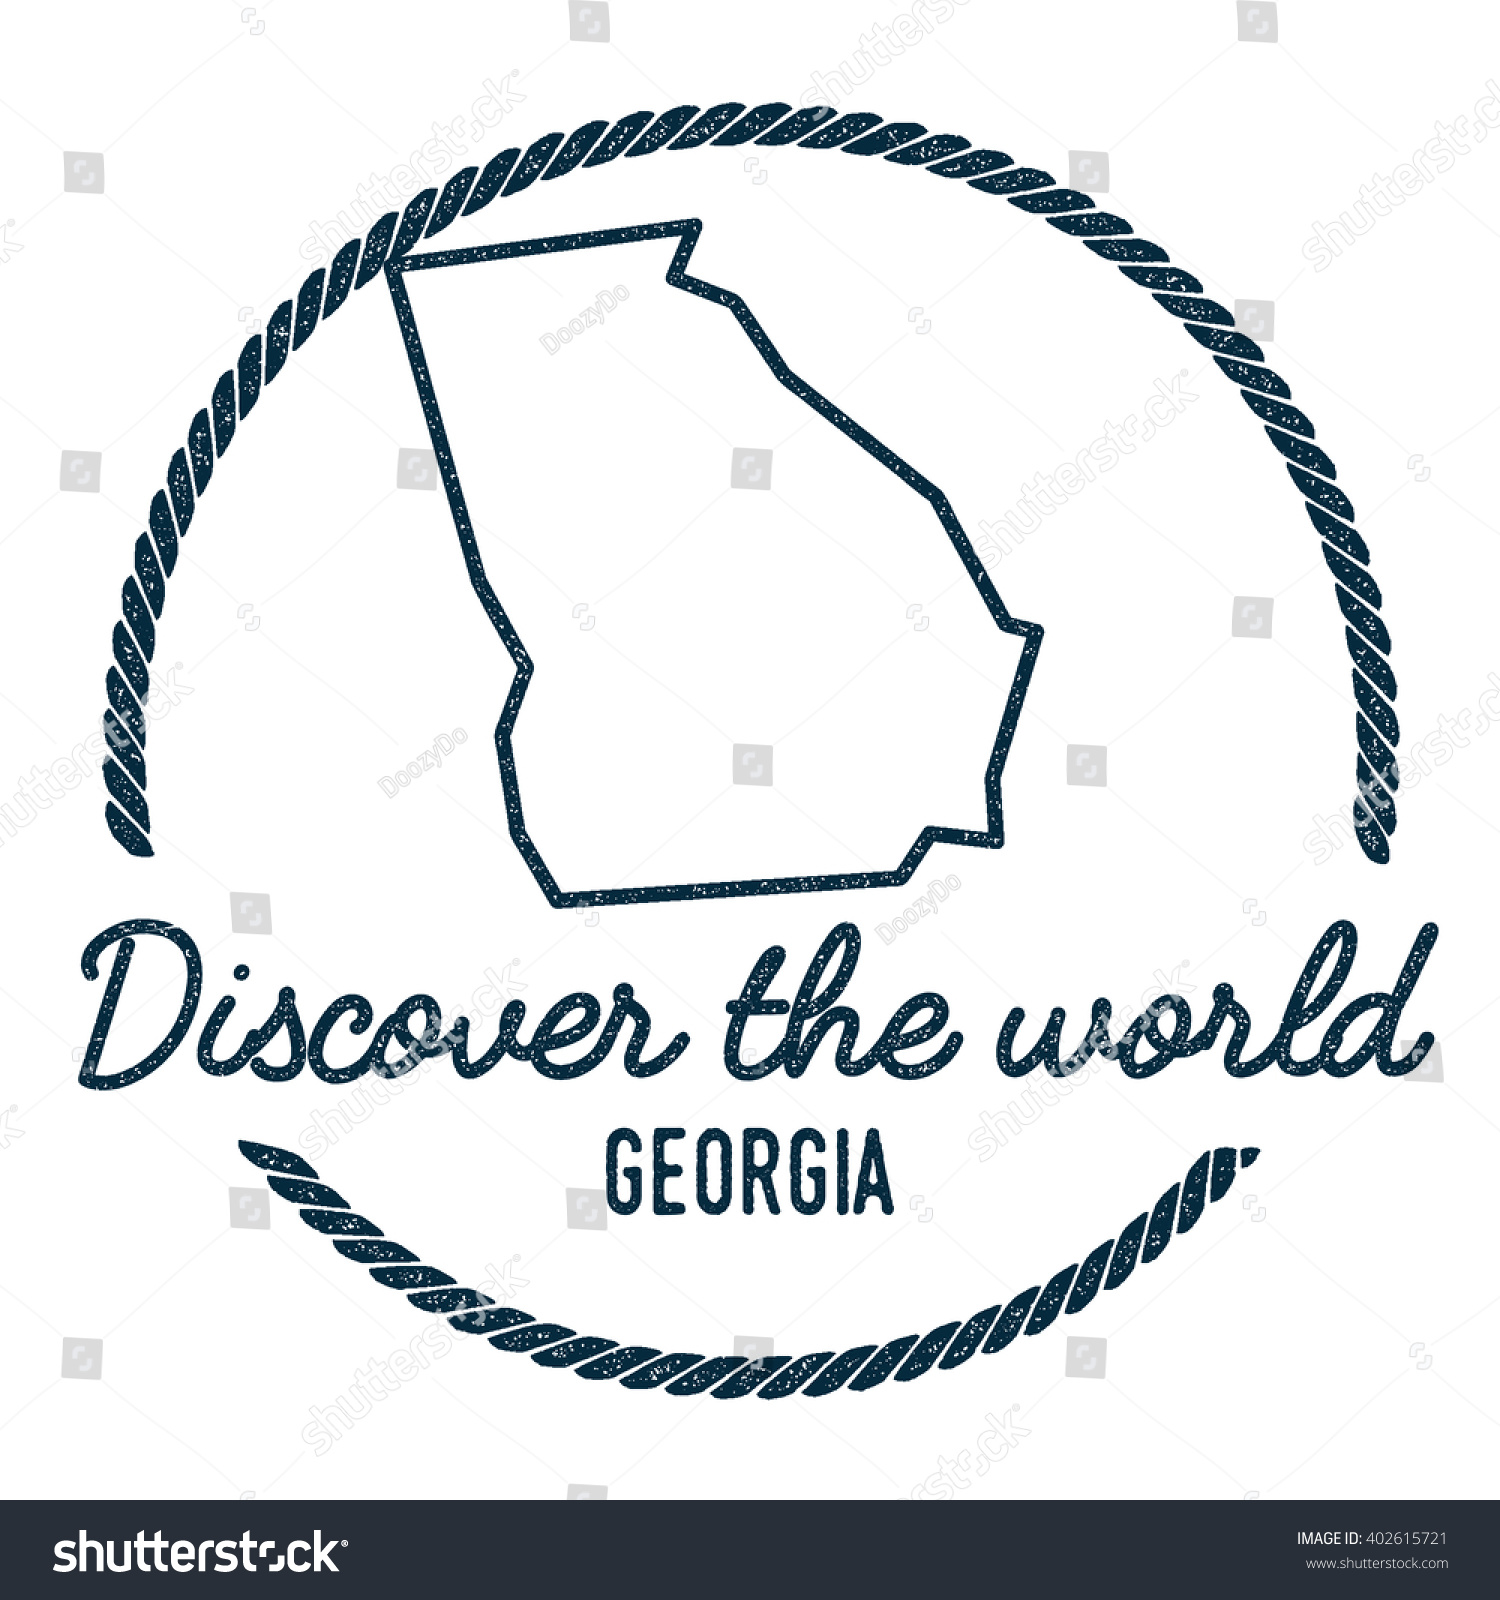 Georgia Map Outline Vintage Discover World Stock Vector - State of georgia map outline